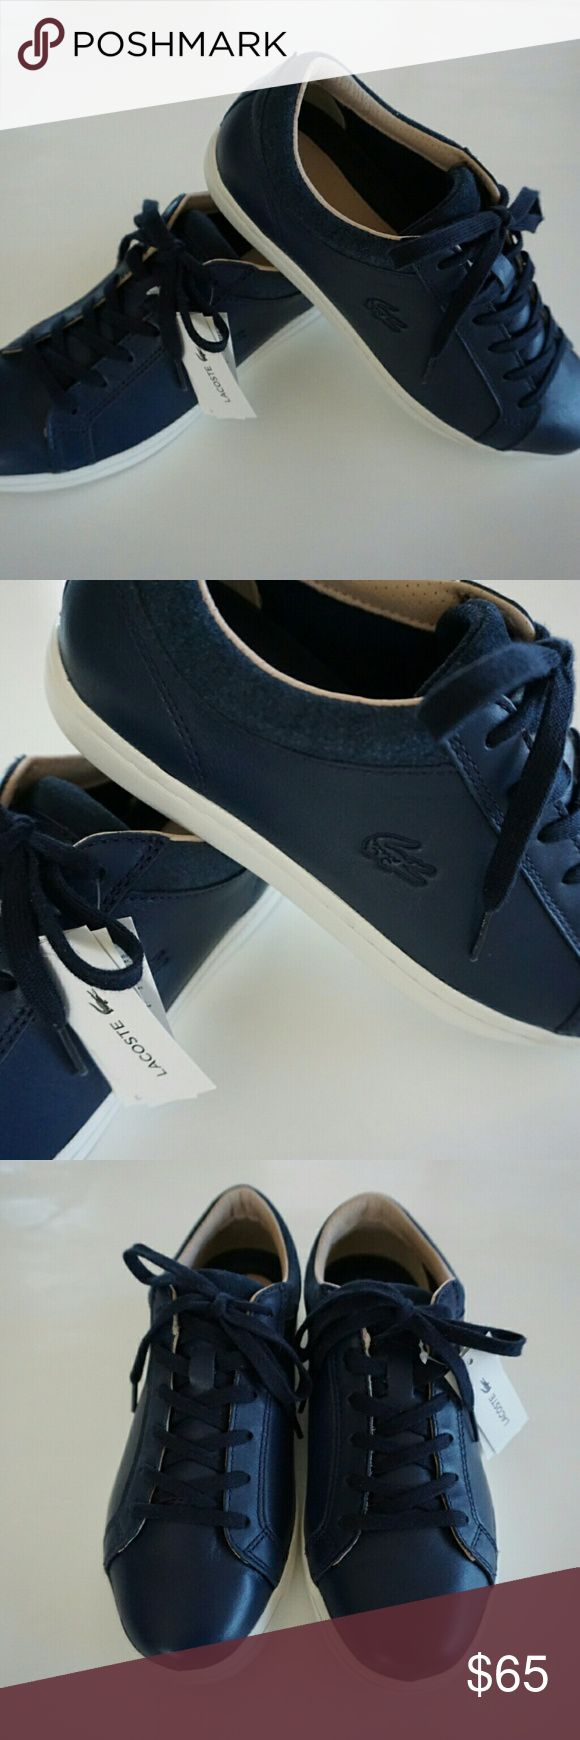 LACOSTE NAVY BLUE LEATHER SNEAKERS SHOES Lacoste navy blue soft leather tennis shoes / sneakers. Tan trim, navy laces, white rubber soles.  Size 7.5 New with tags - no box Lacoste Shoes Sneakers